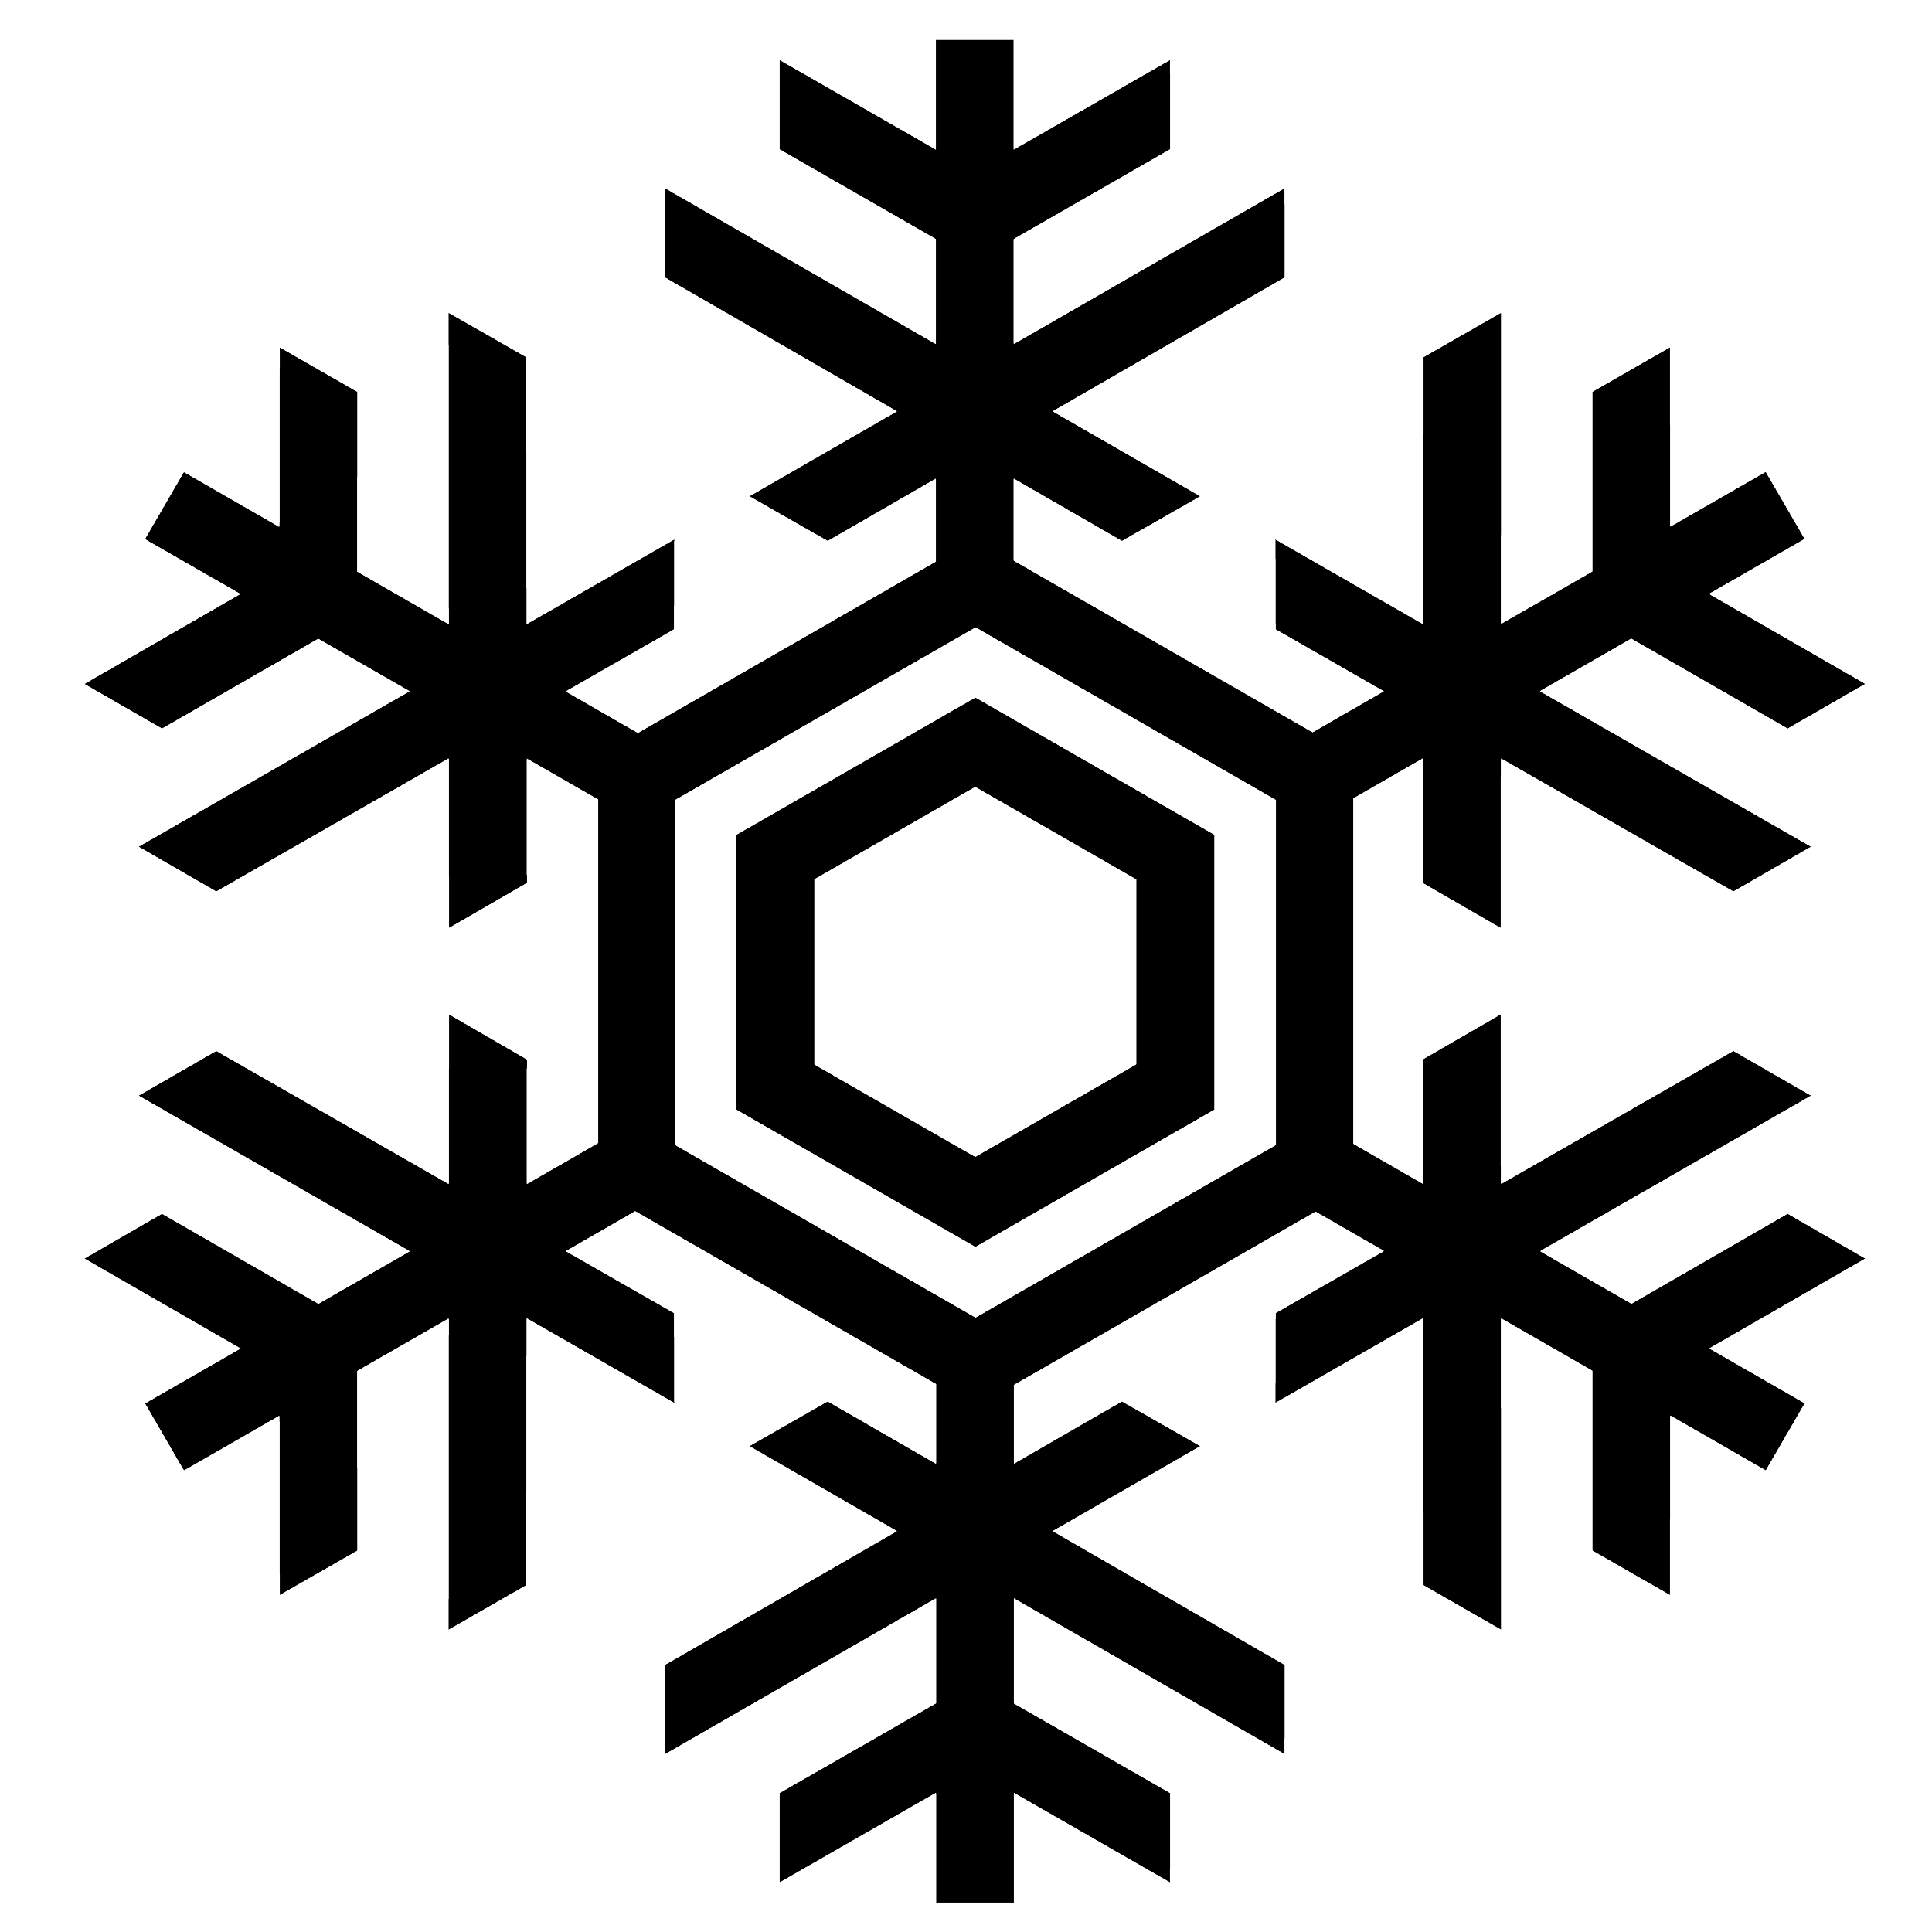 Snowflake clipart black royalty free download snowflake silhouette - Google Search | shapes - line | Pinterest ... royalty free download